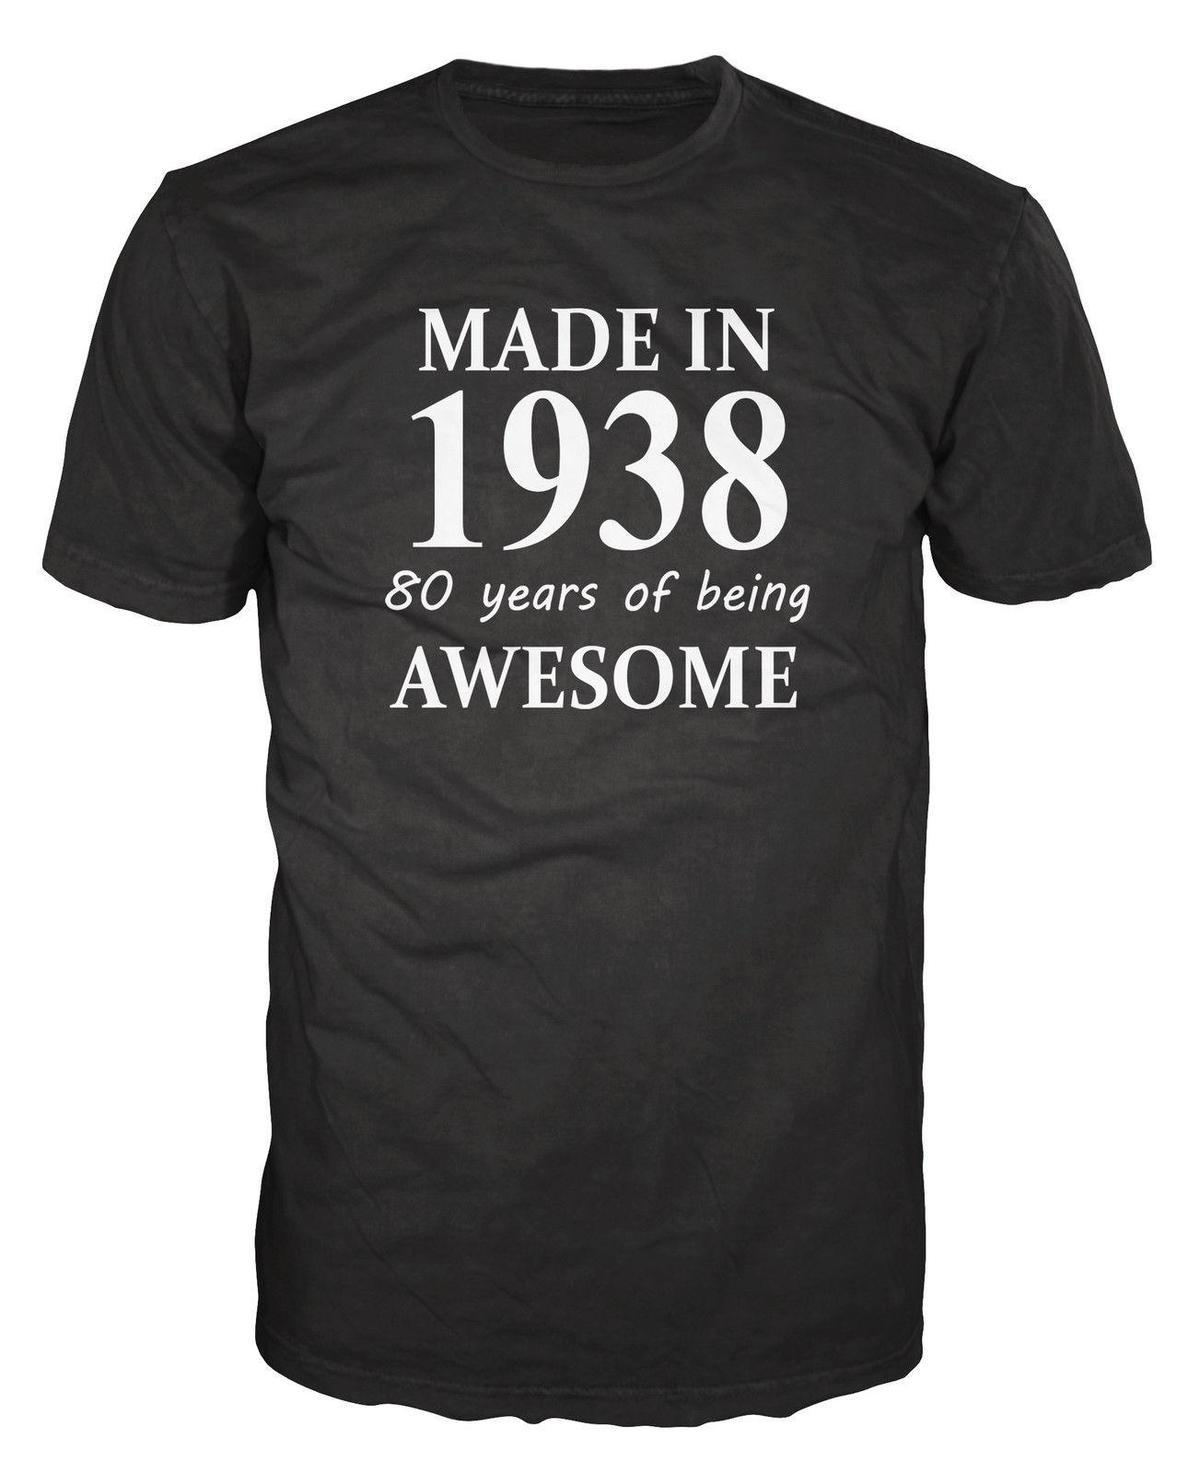 Made In 1938 80th Birthday Anniversary Party Funny T Shirt Cool Shirts Be Awesome From Linnan001 1467